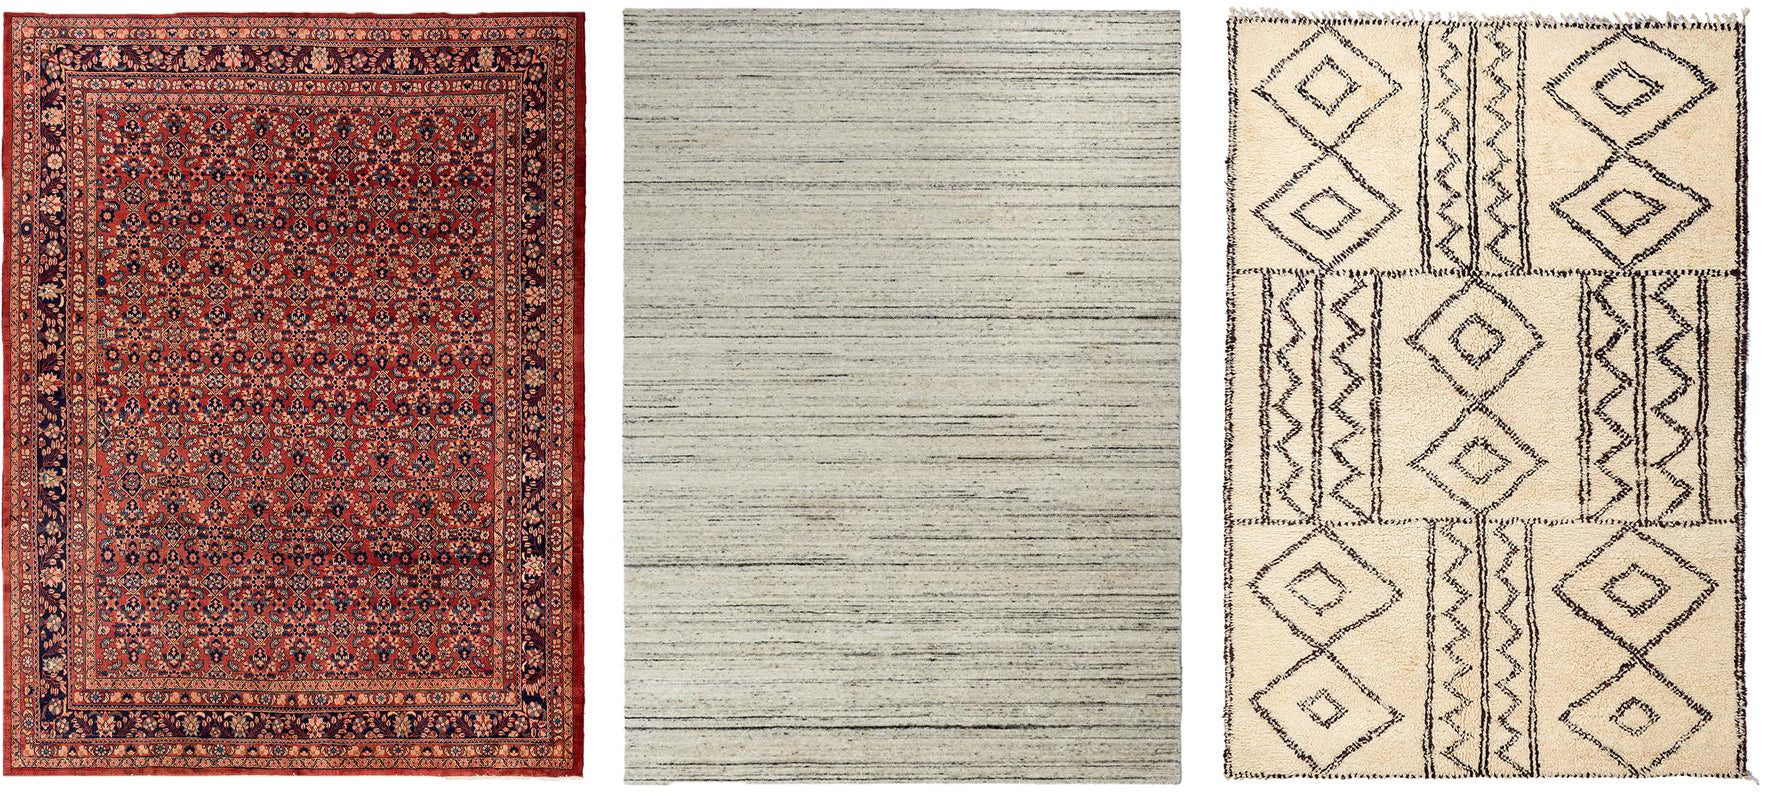 Rug Collection, Layering rugs, interior design